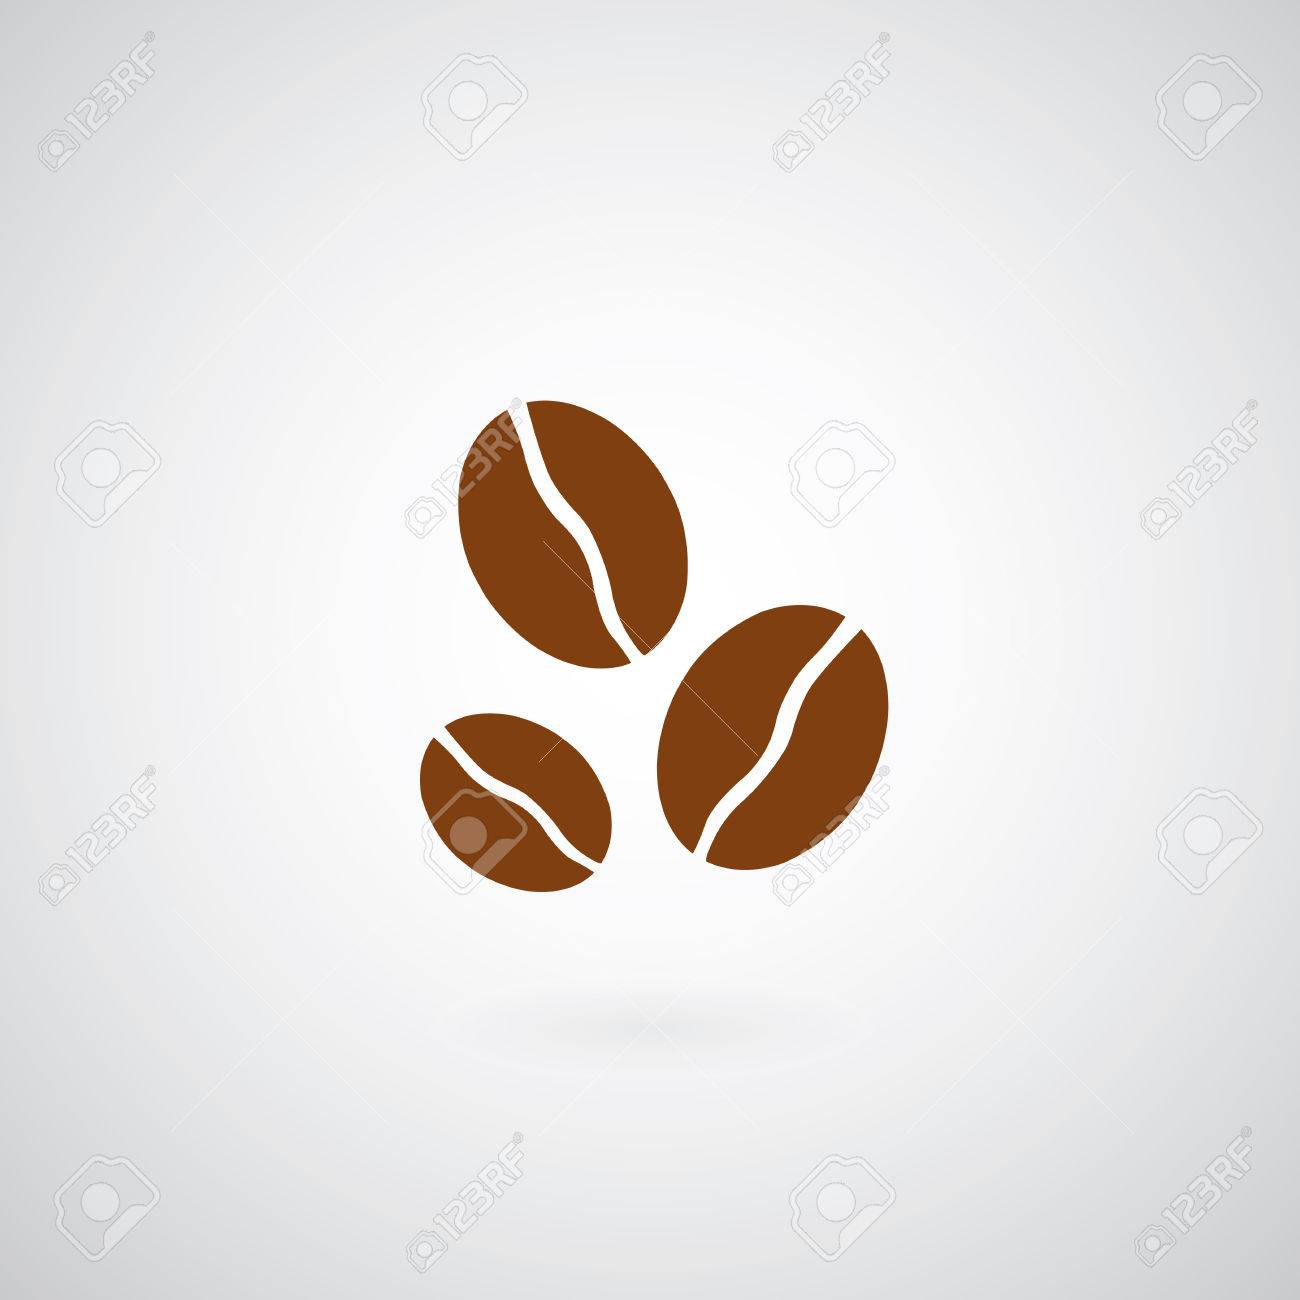 Coffee beans symbol on gray background - 29035990